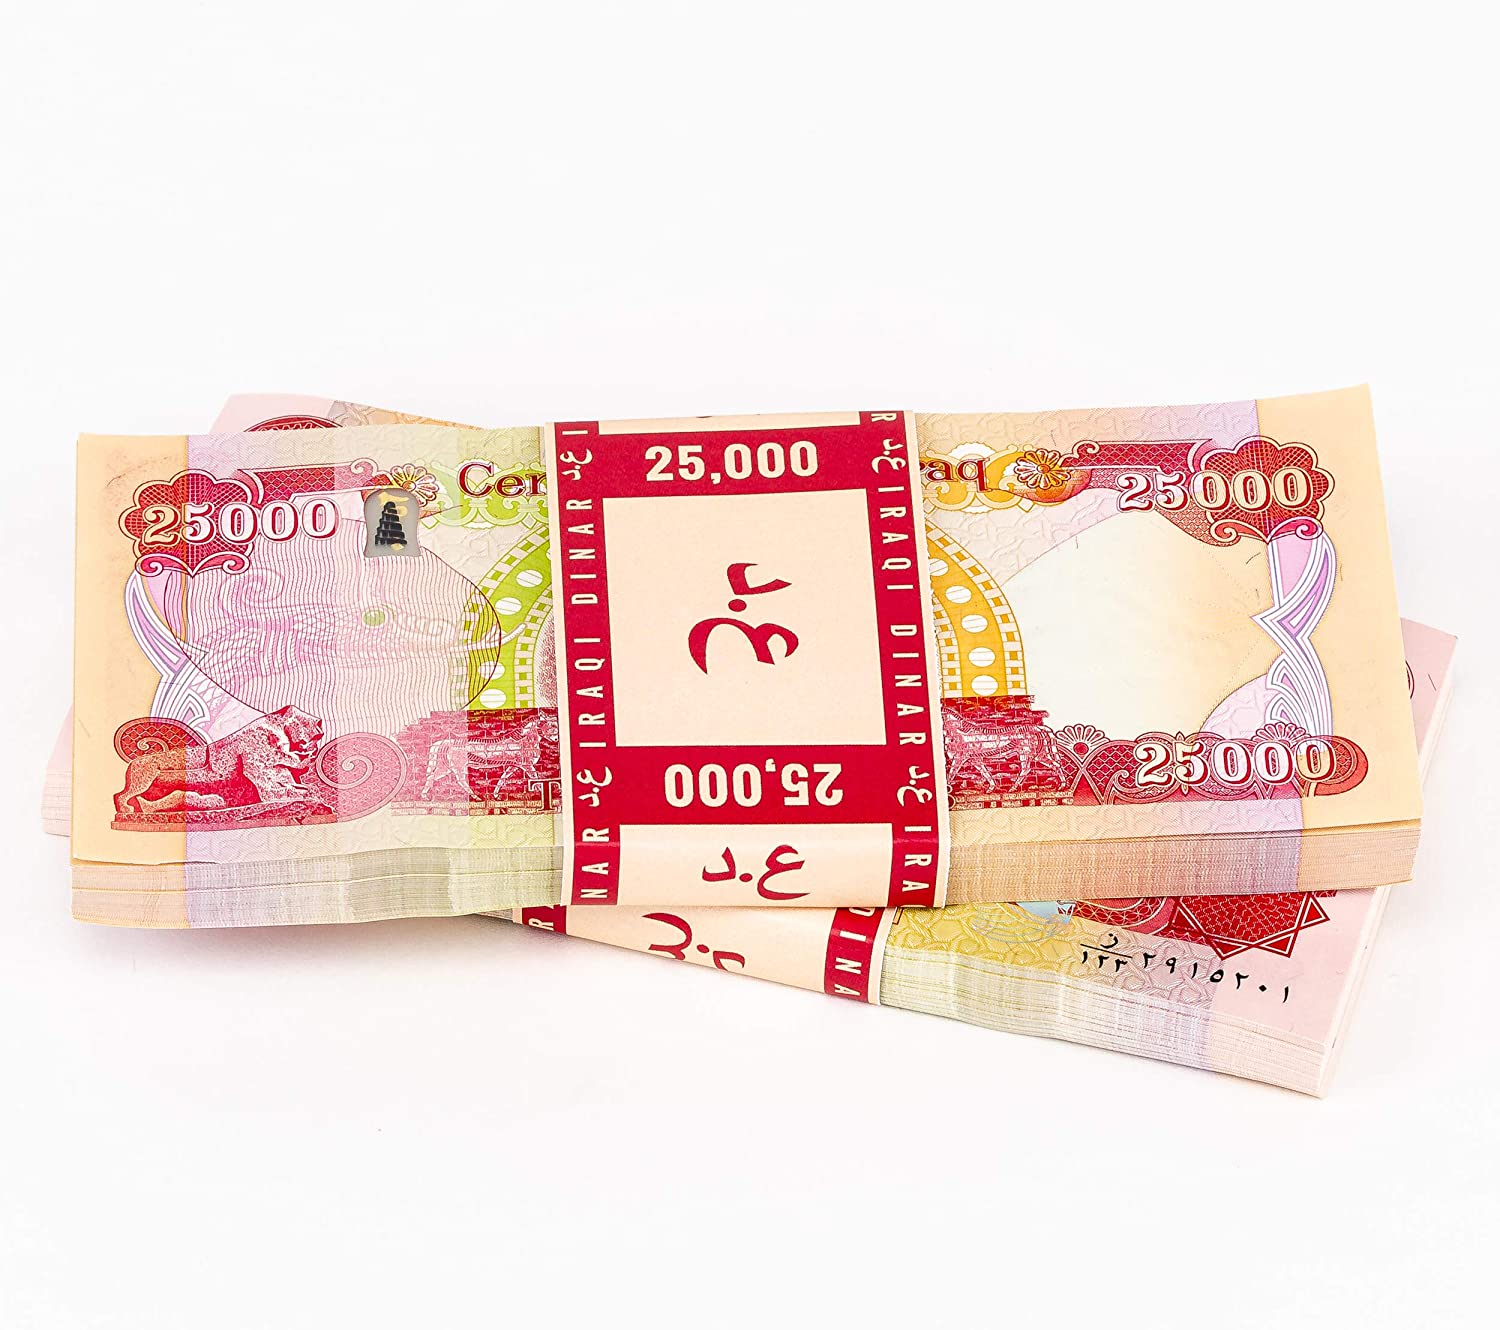 25 000 Iraqi Recommended Dinar 1 25000 New IQD Credence Series 2014 Banknote